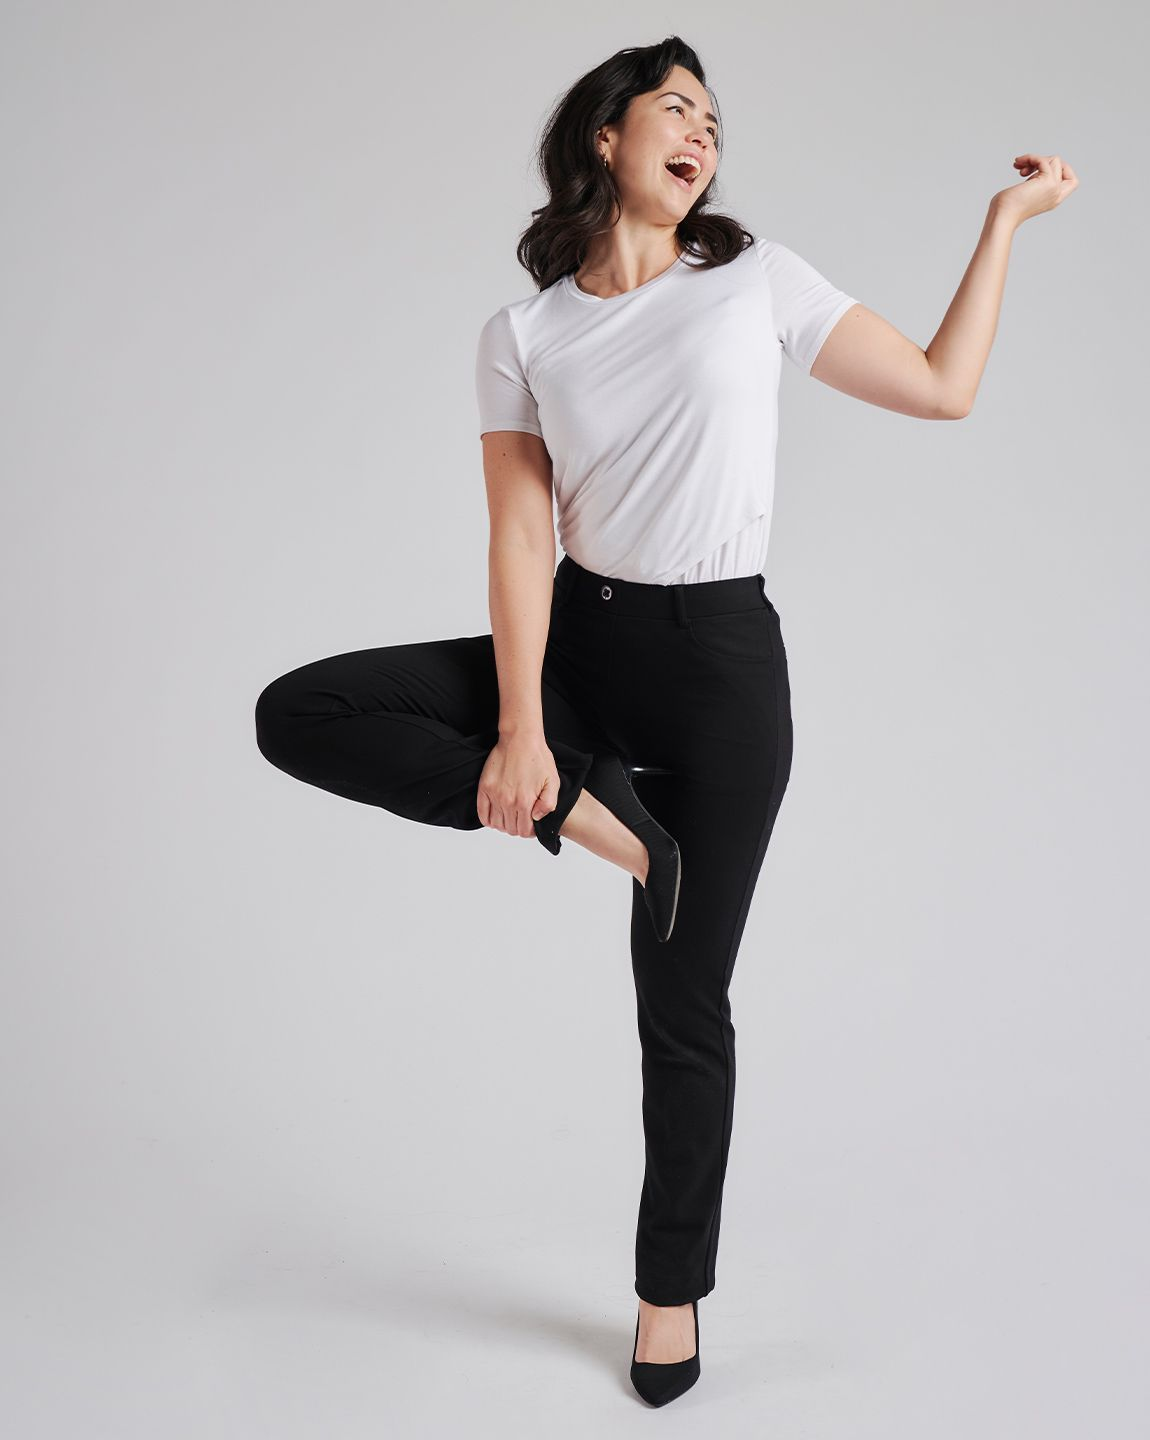 【BUY 2 Get Extra 20% OFF &Free Shipping 】Dress Pant Yoga Pants